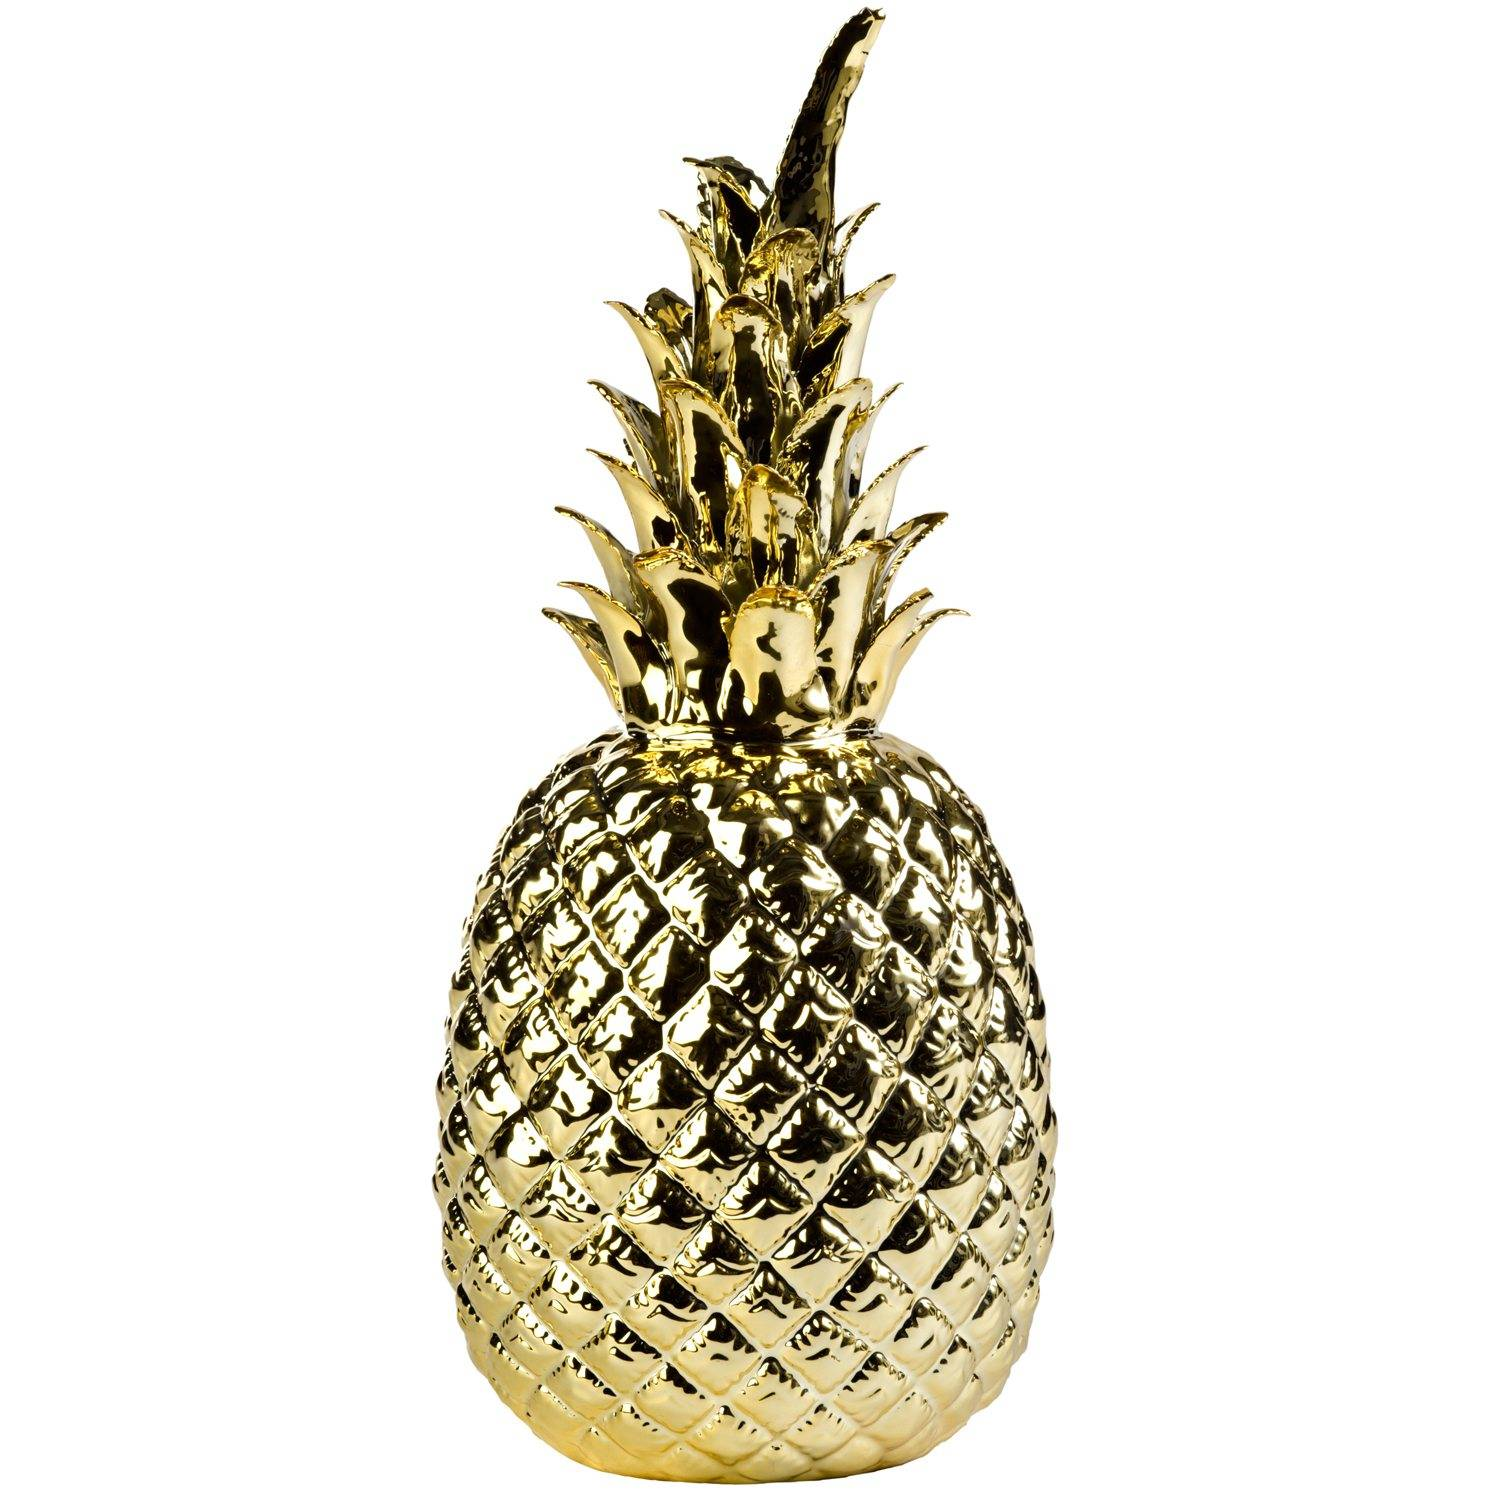 Pols Potten Pineapple, Kulta